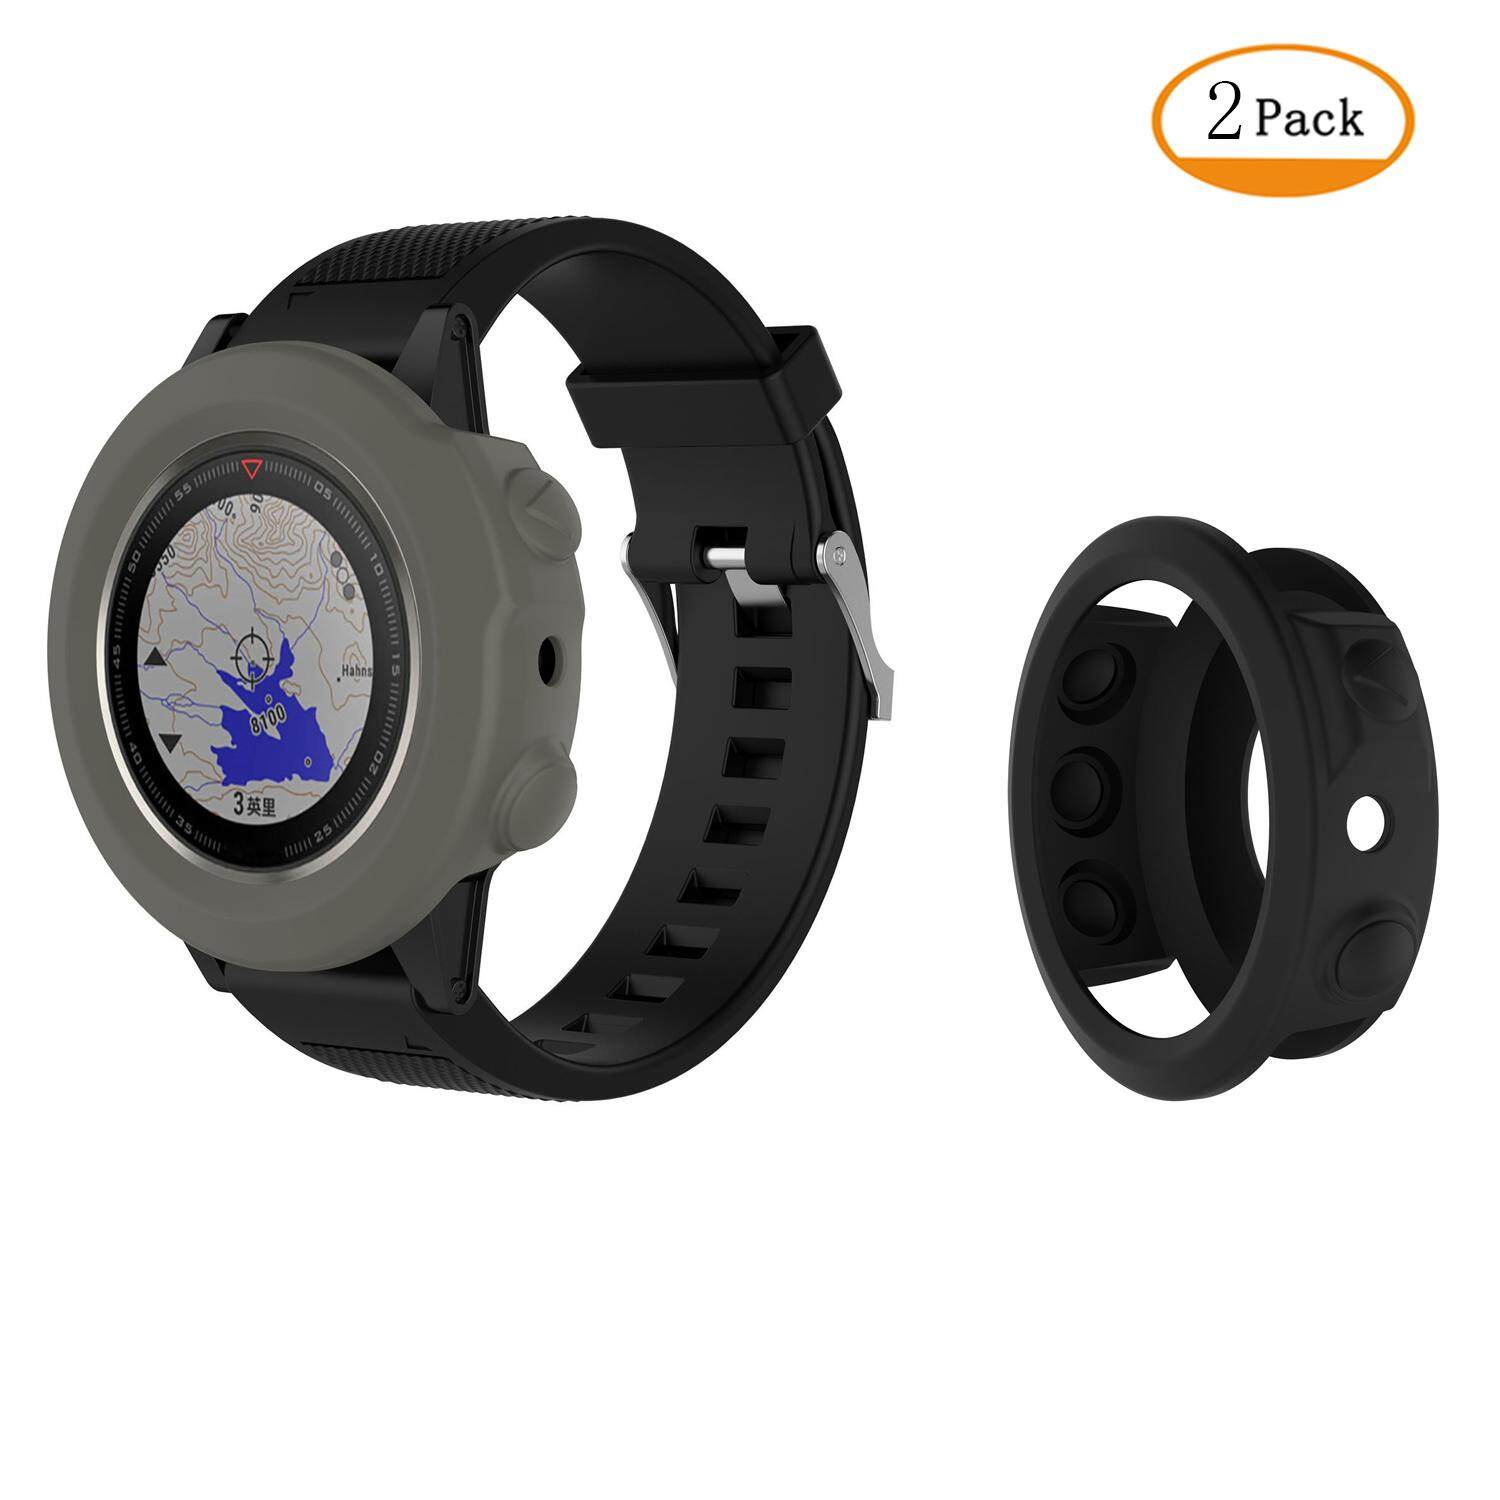 2 Pack Silicone Cover Cases Screen Protector for Garmin Fenix 5X Watch